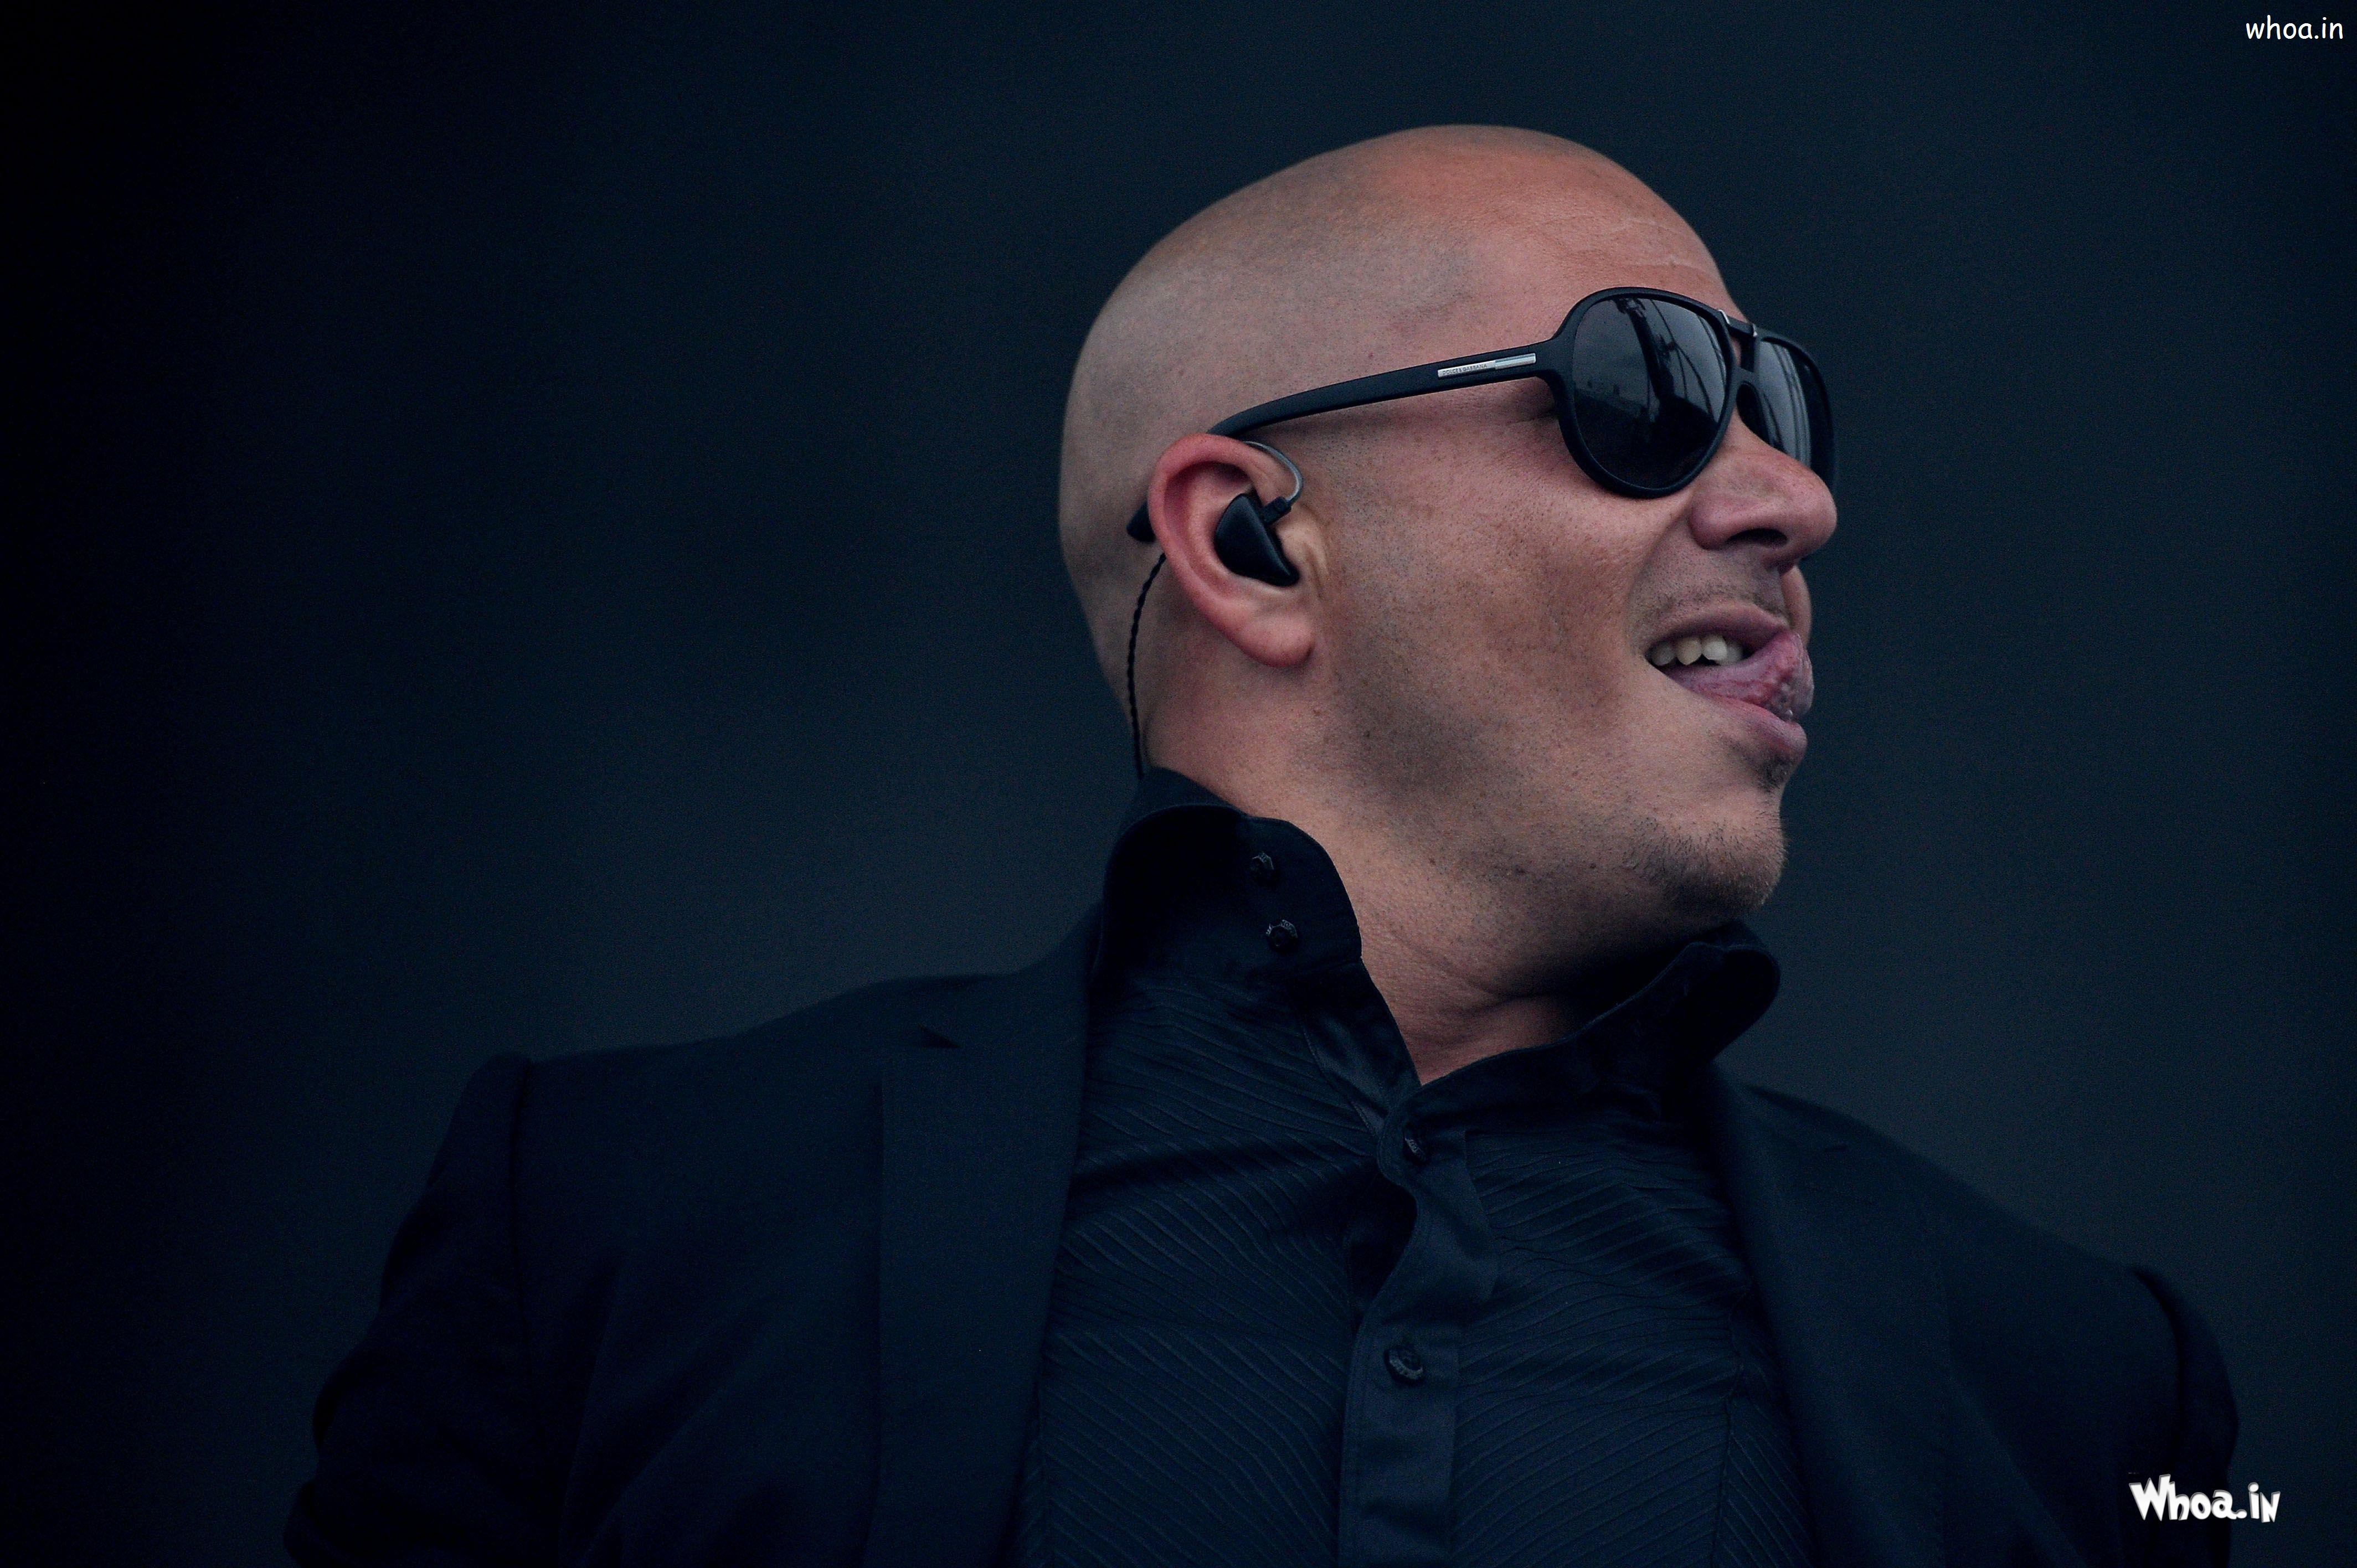 Pitbull Black Suit And Sunglass With Dark Background